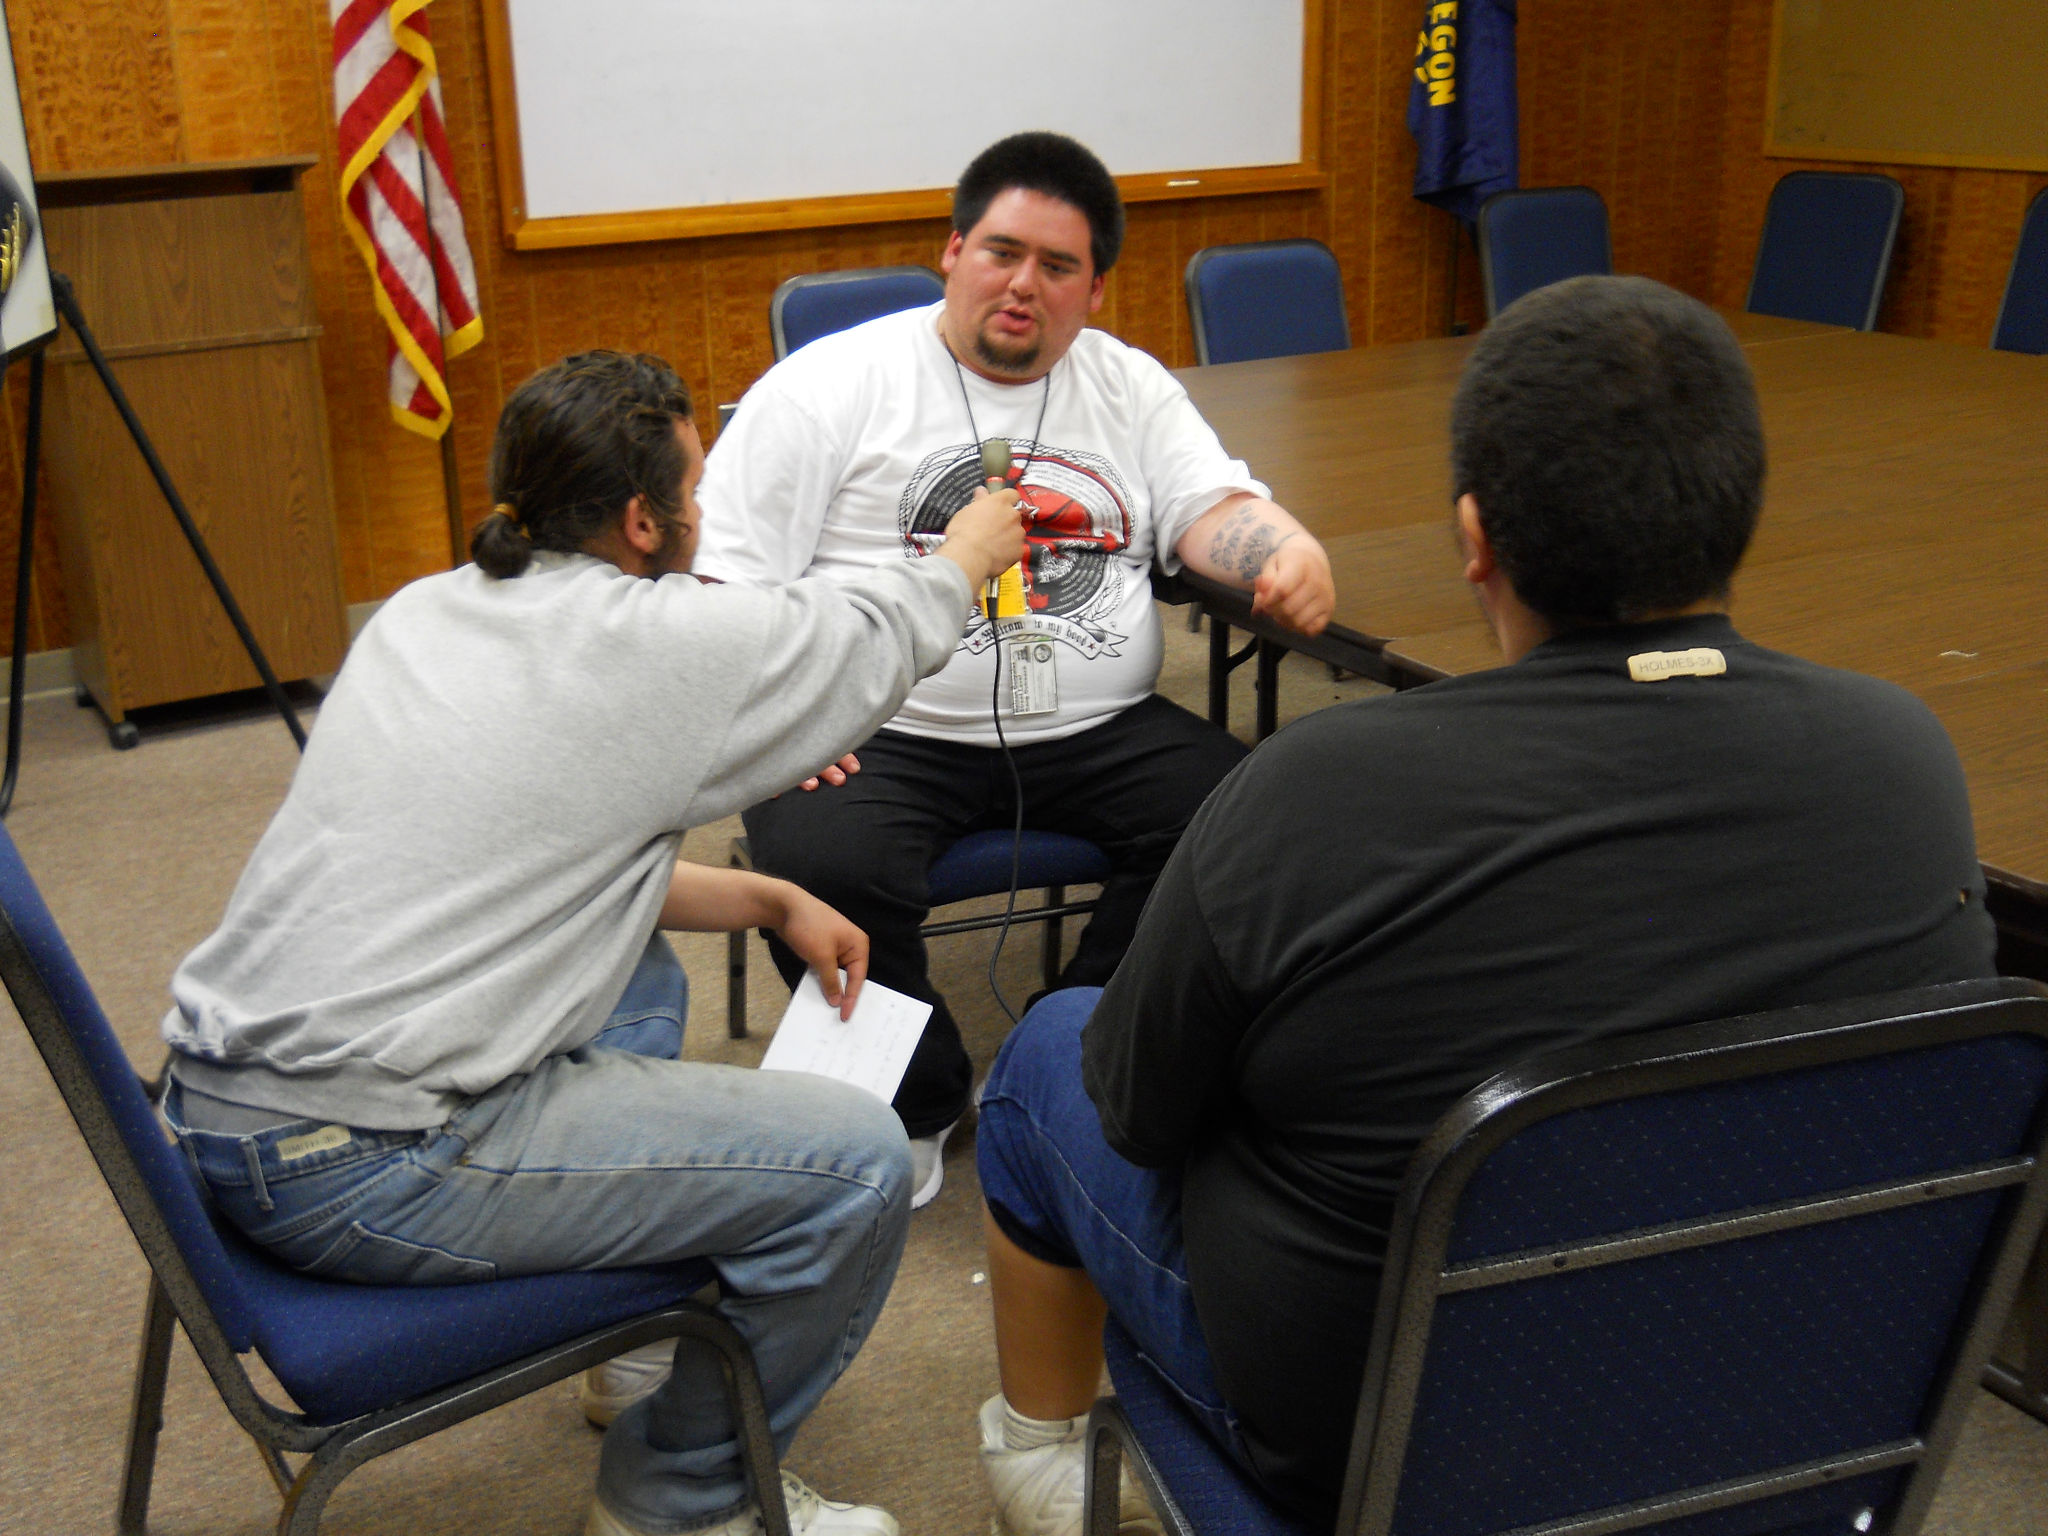 Youth at MacLaren Youth Correctional Facility in Woodburn, Oregon interview one of their guests during MYP's radio journalism group.